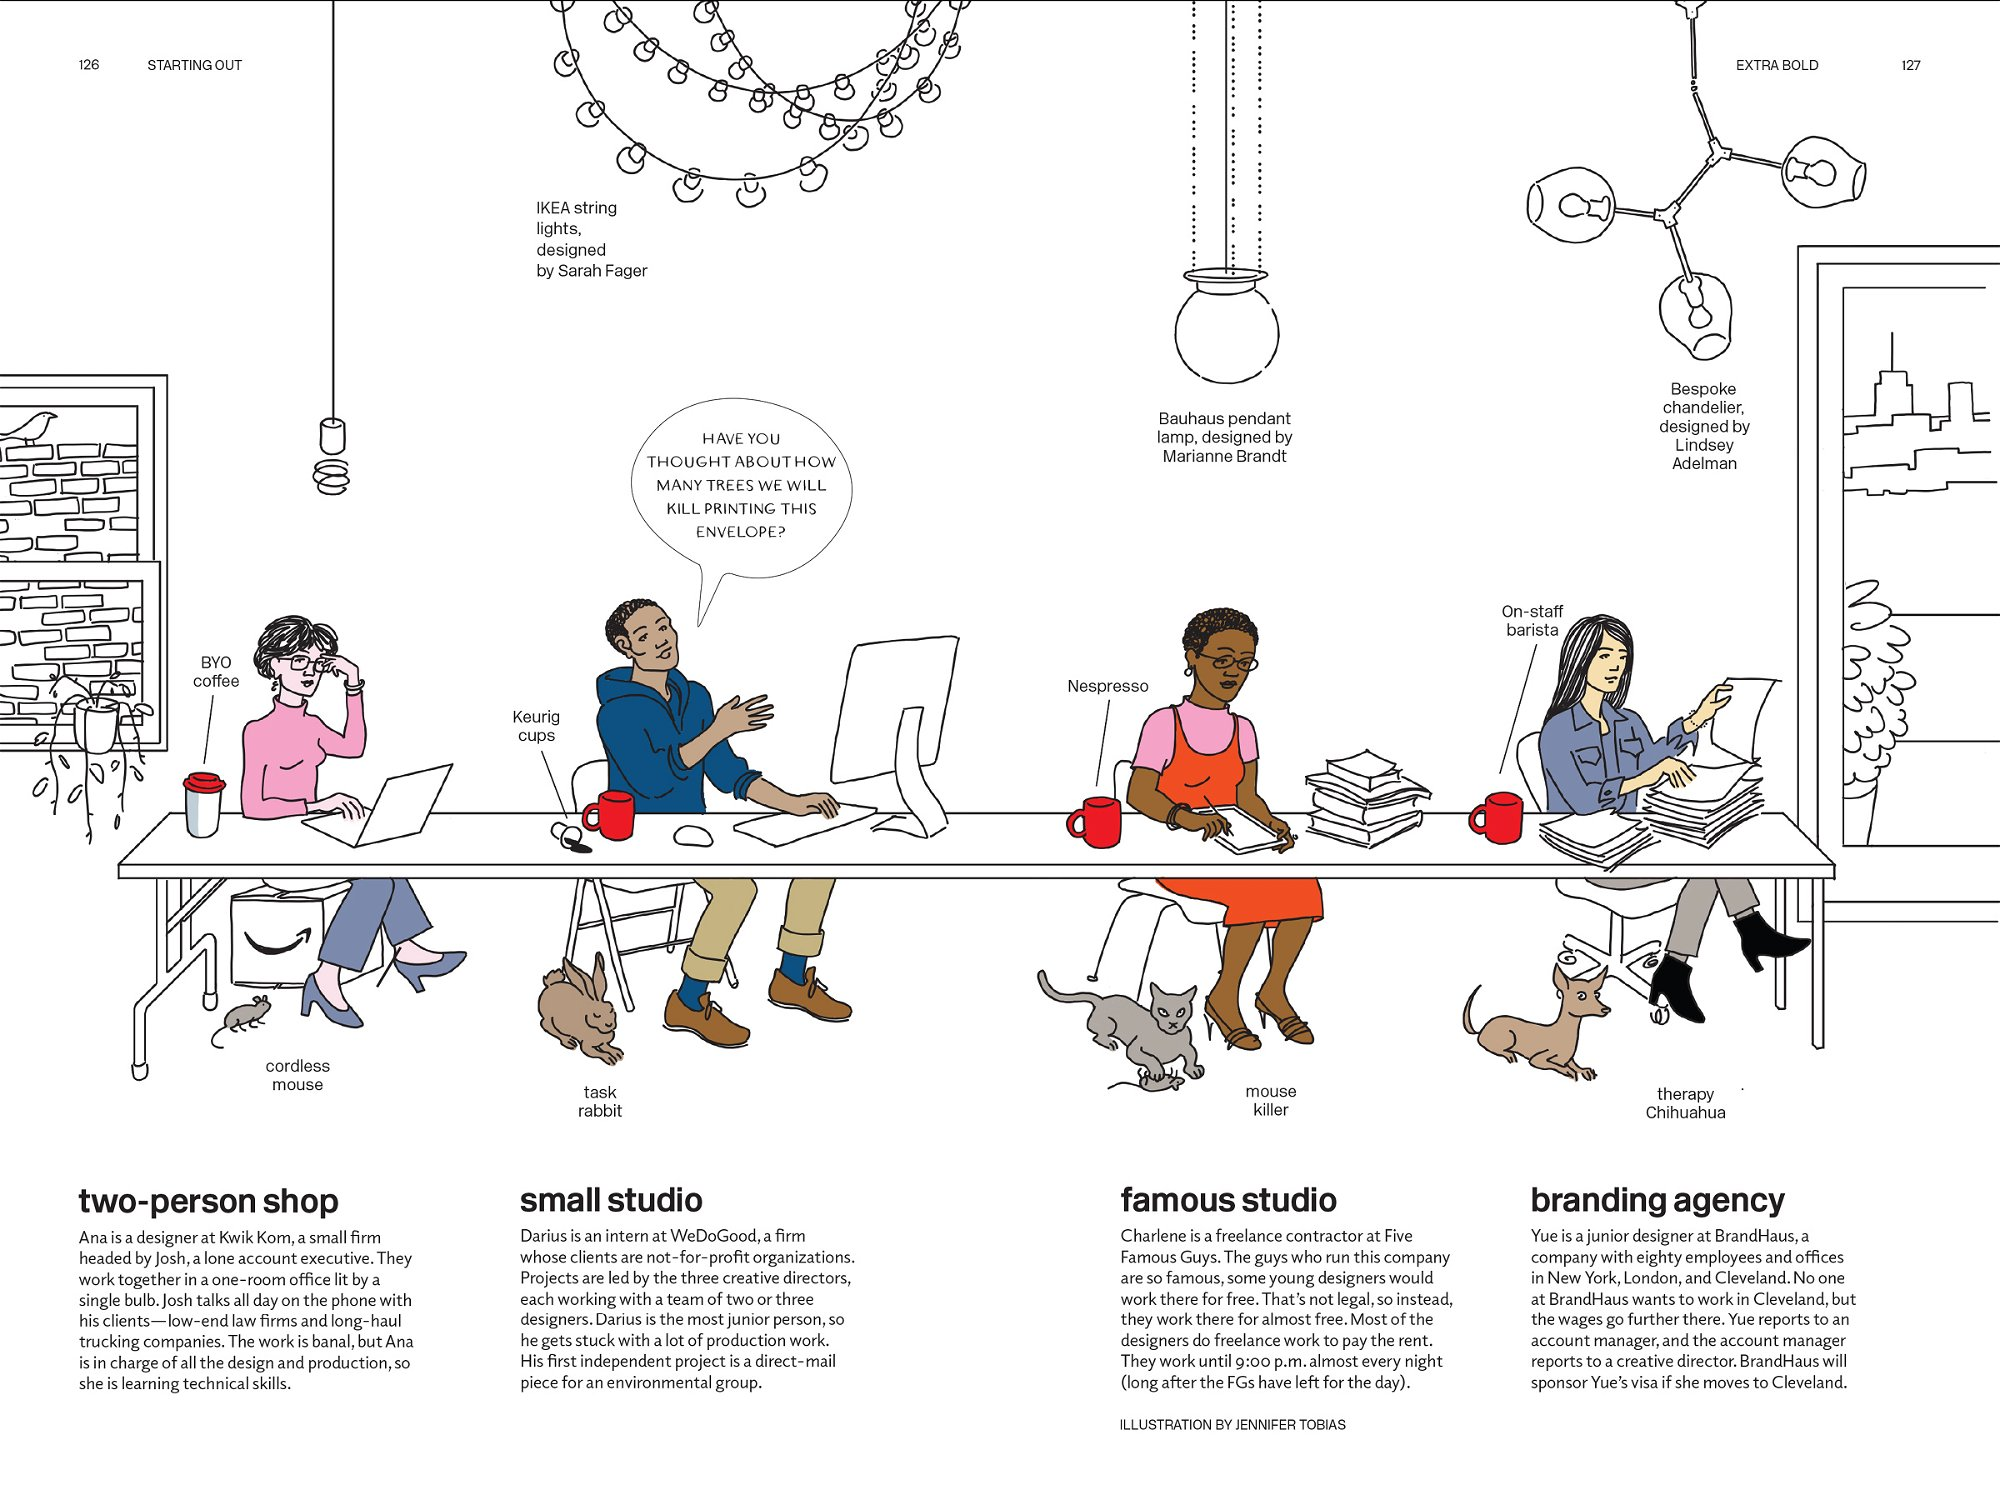 handdrawn illustration of different types of design studios: two-person shop, small studio, famous studio, and branding agency, and the differences among them